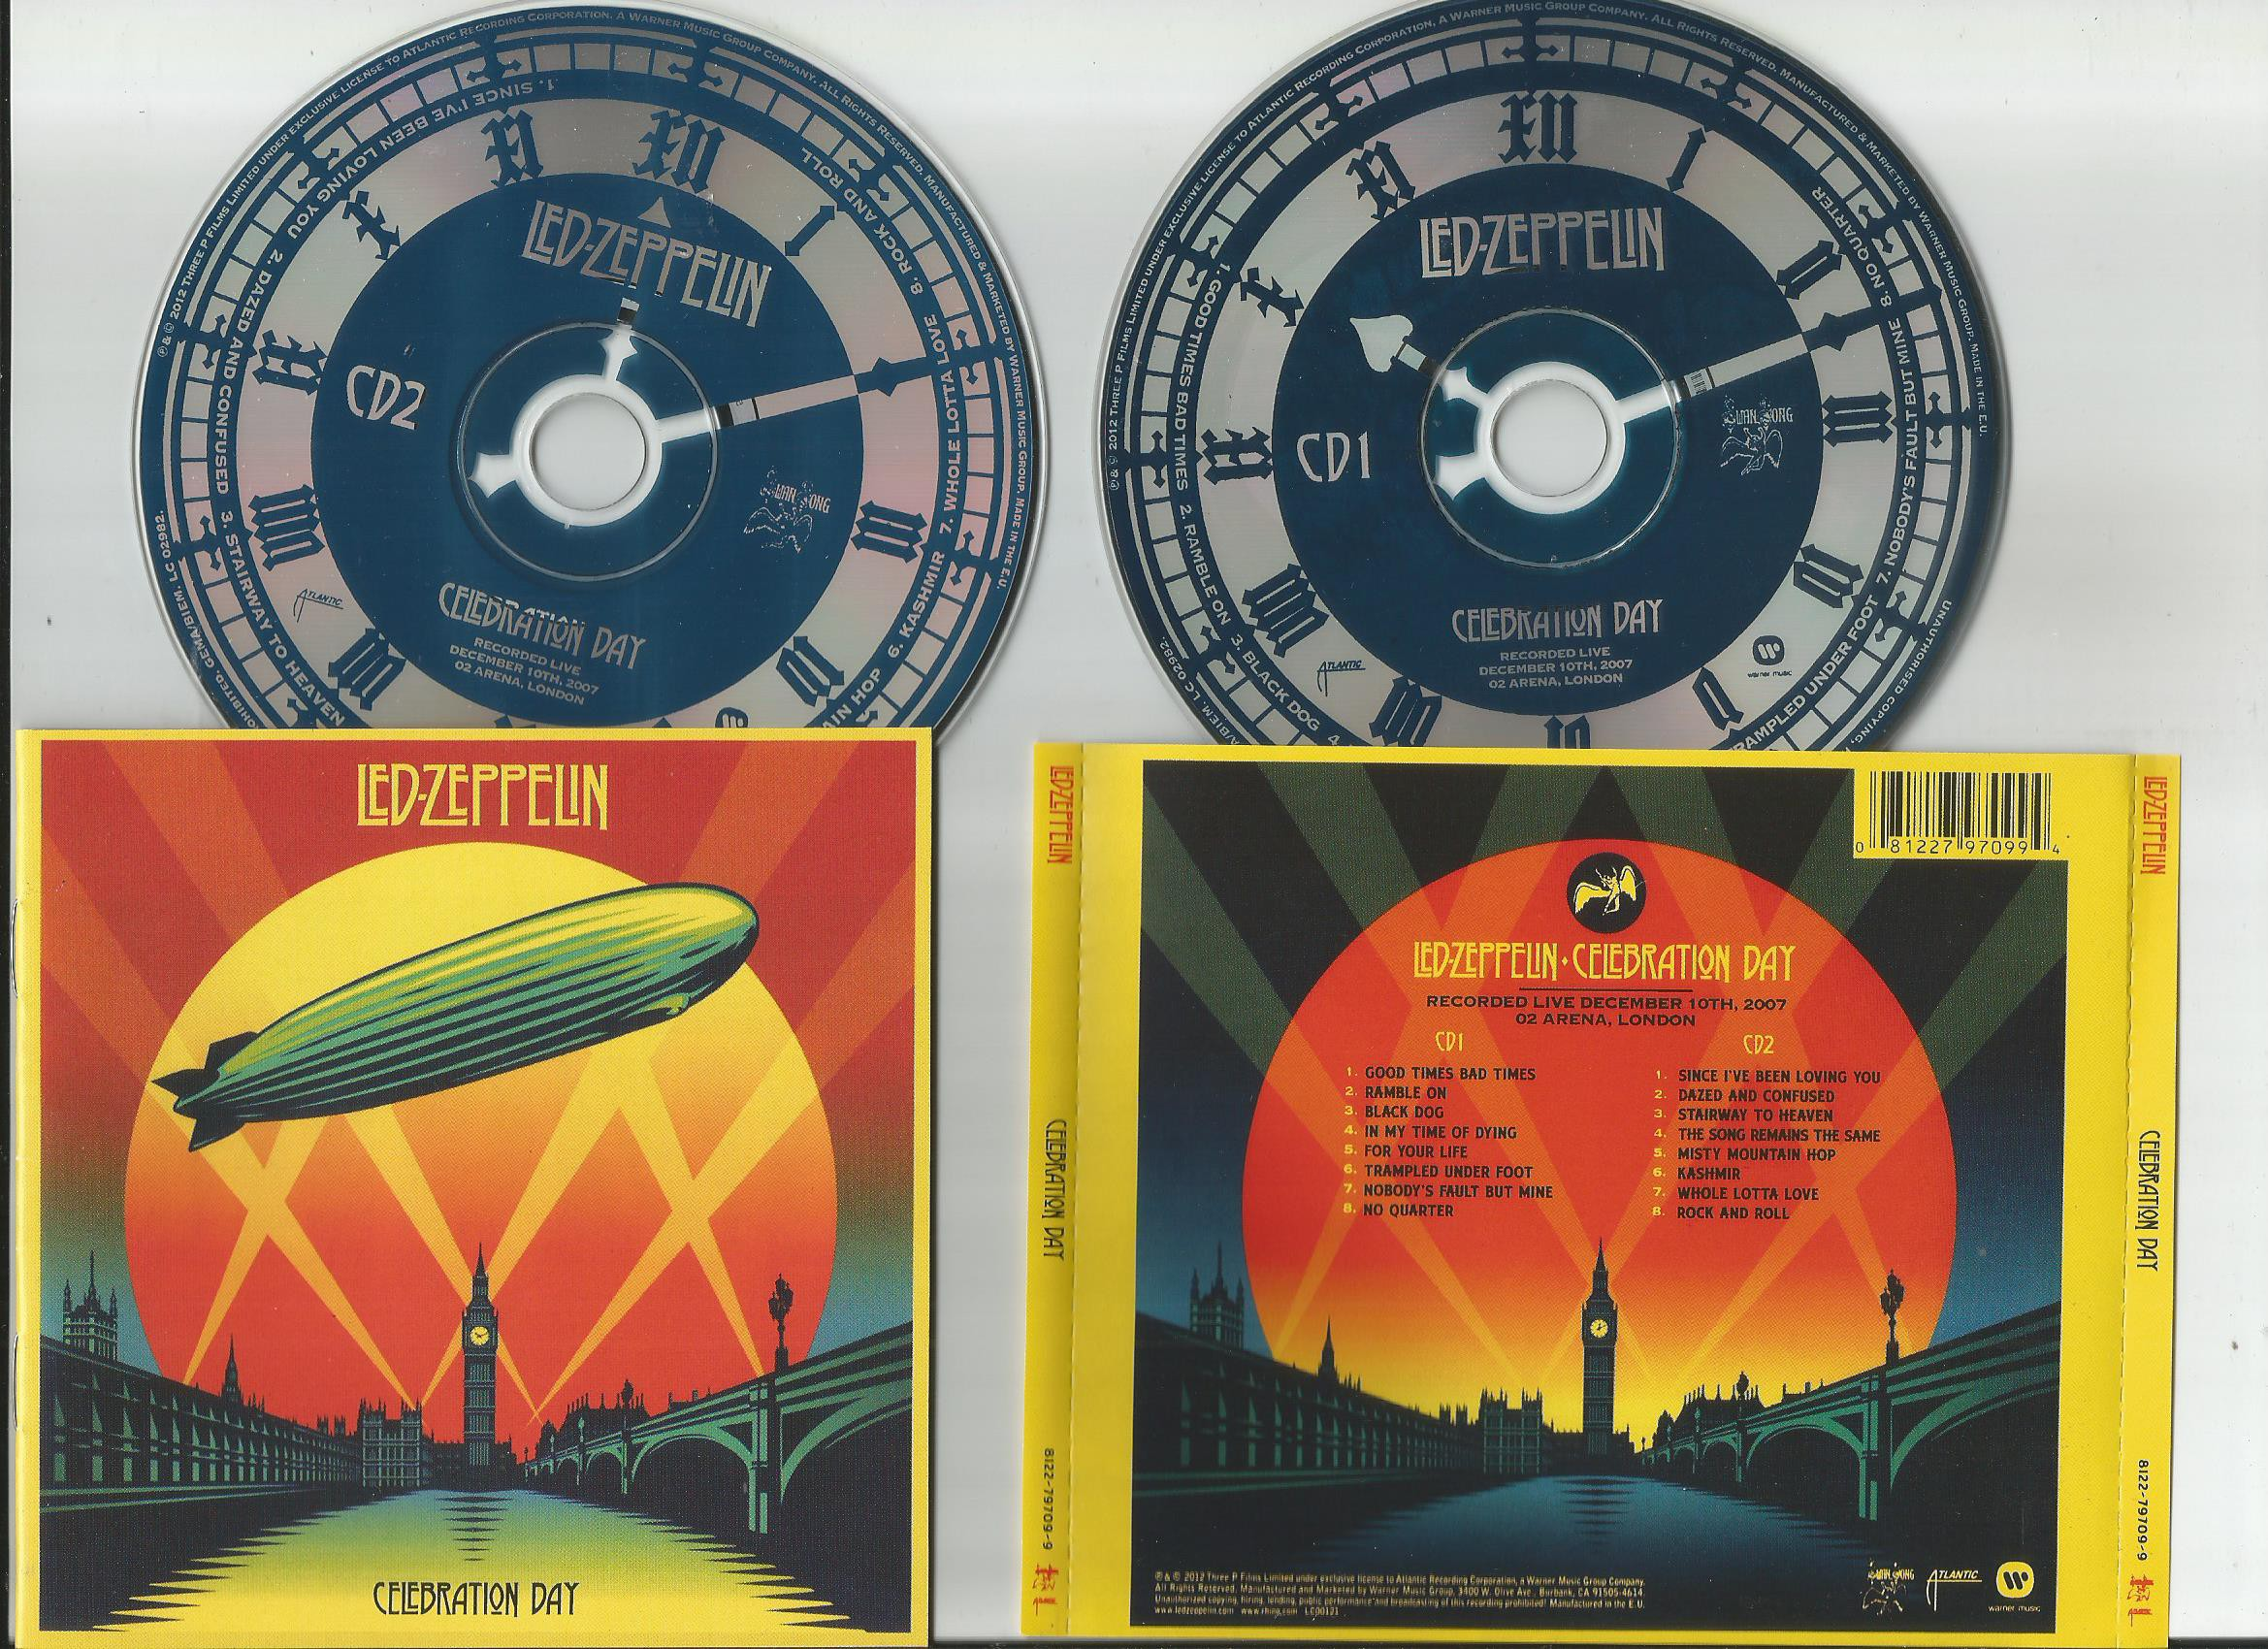 Led Zeppelin Celebration Day Records Lps Vinyl And Cds